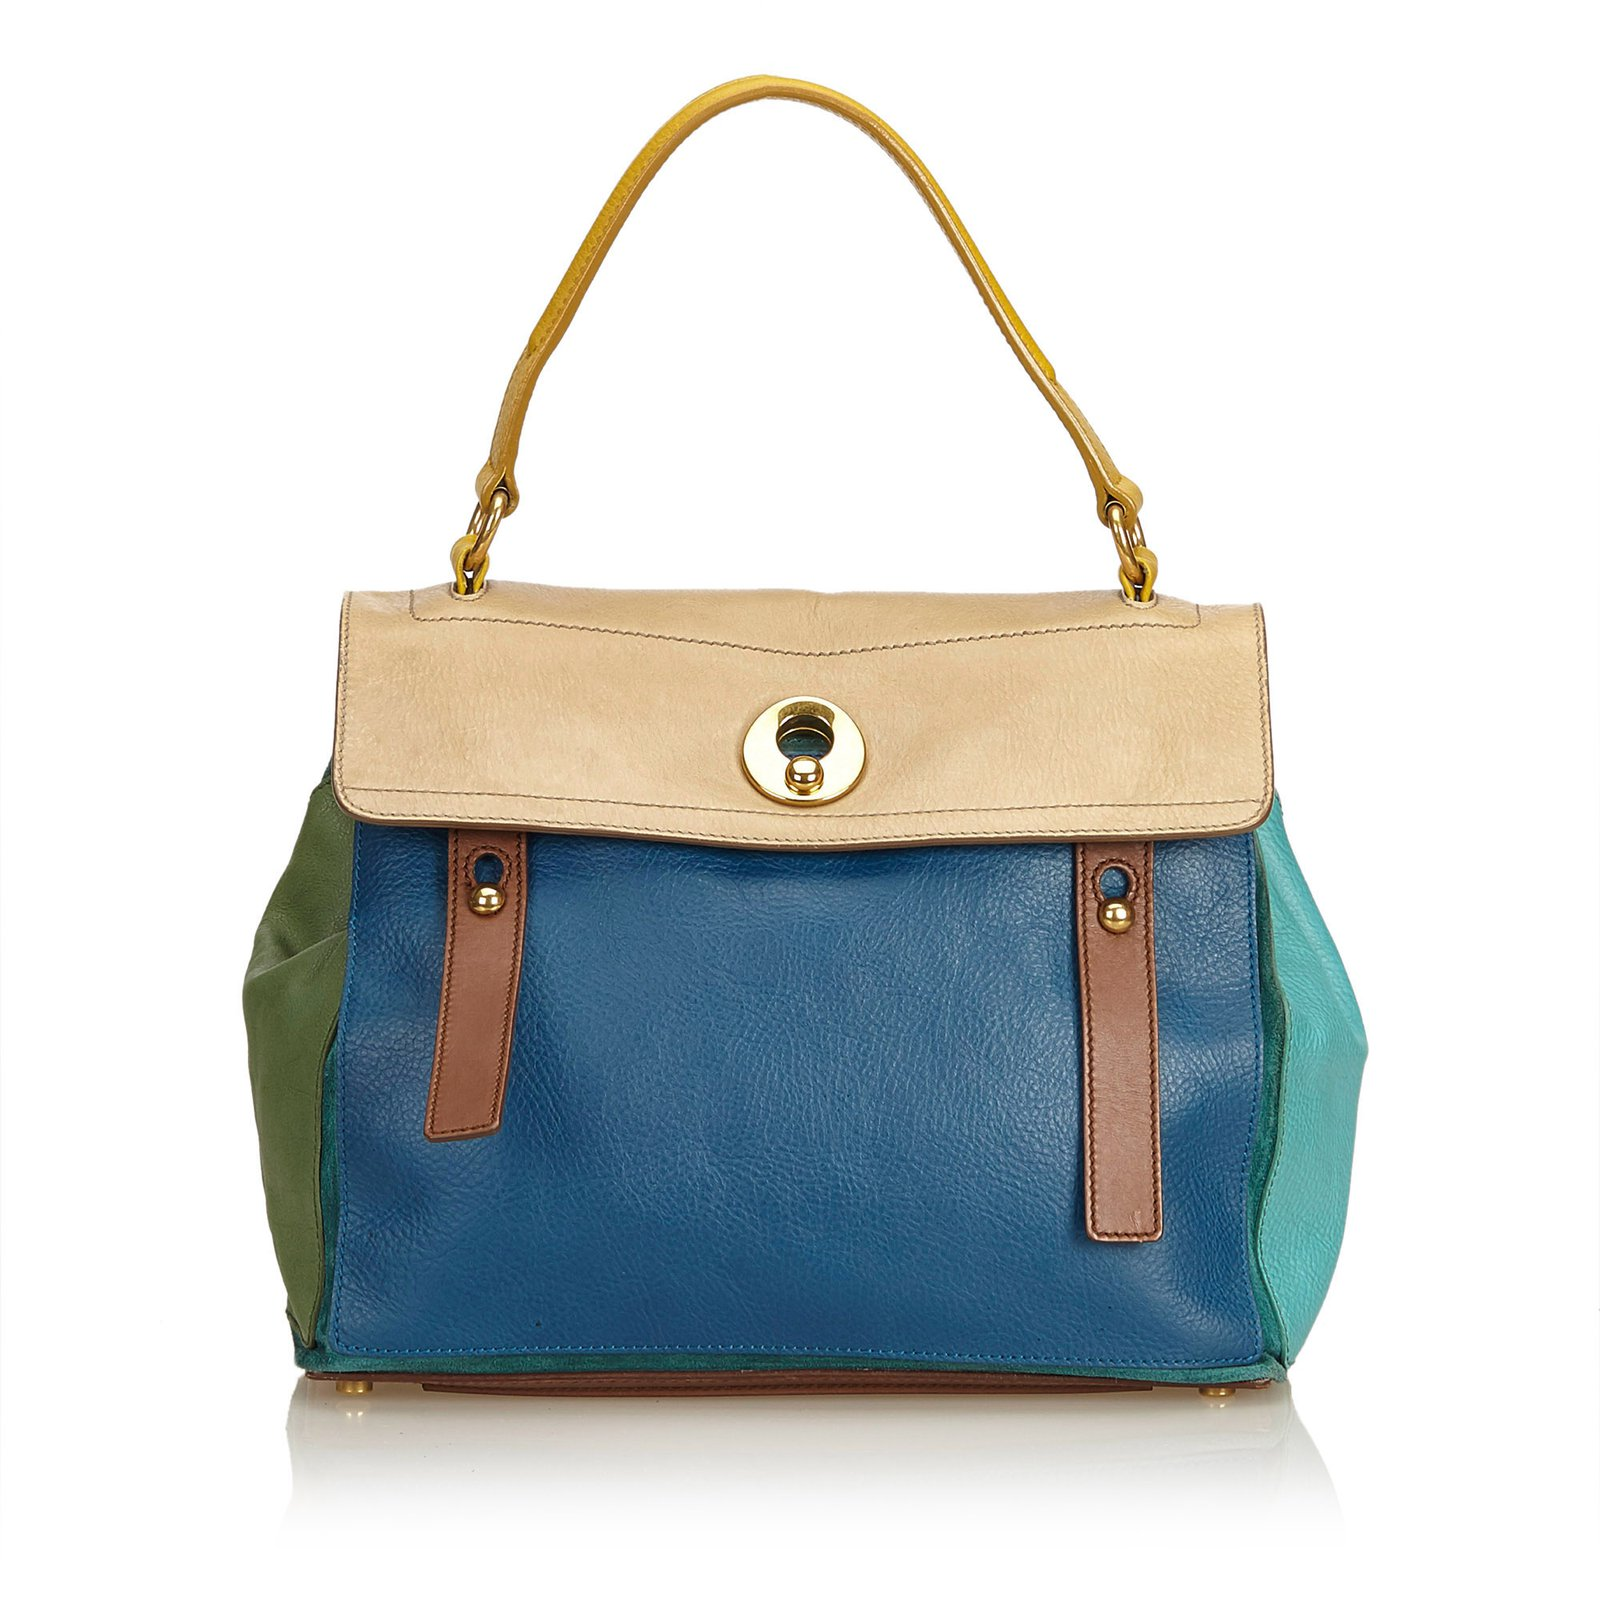 Autre marque multicolor leather muse two handbag handbags leather other  blue multiple colors ref jpg 1600x1600 4e97bbf973f7a